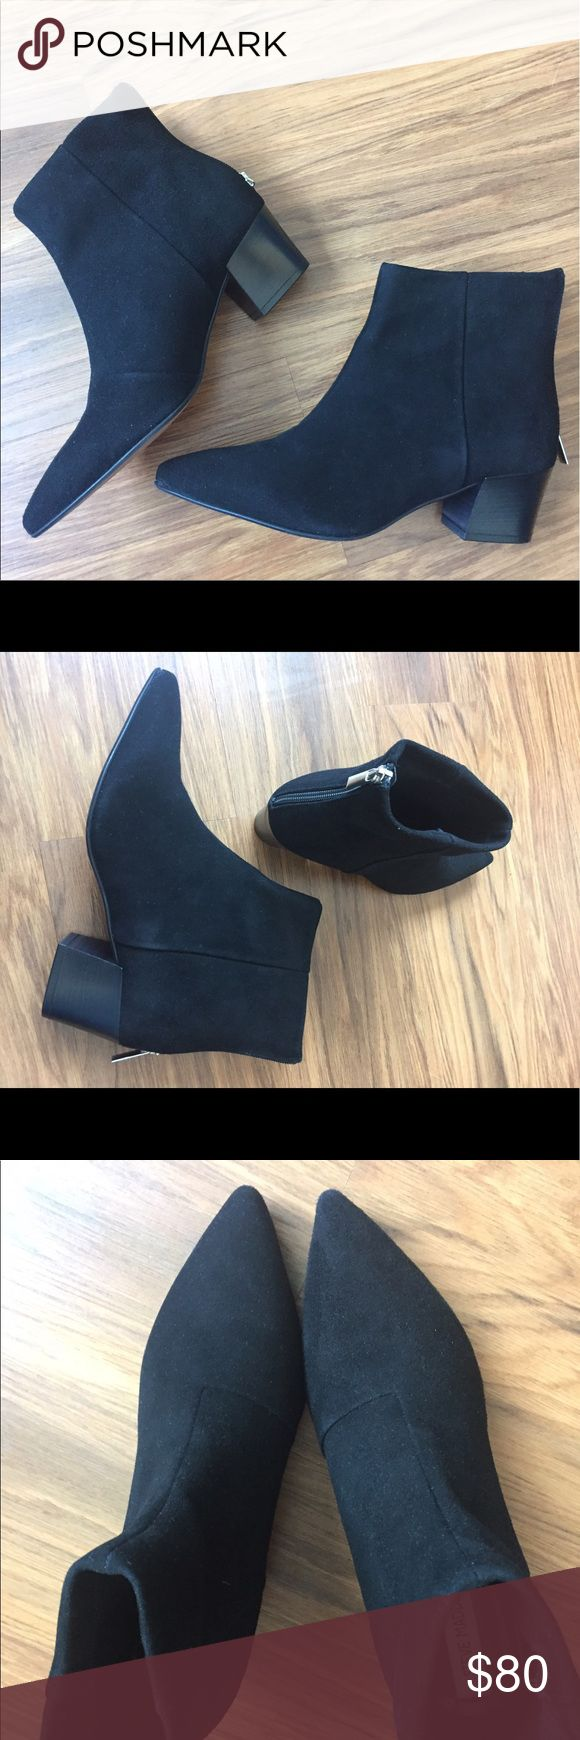 Steve Madden Black Suede Pointed Ankle Boot US 8.5 Steve Madden black suede pointed ankle booties. Never worn outside of the house because slightly too small (I'm a 9). Breaks my heart coz they're so pretty. Steve Madden Shoes Ankle Boots & Booties